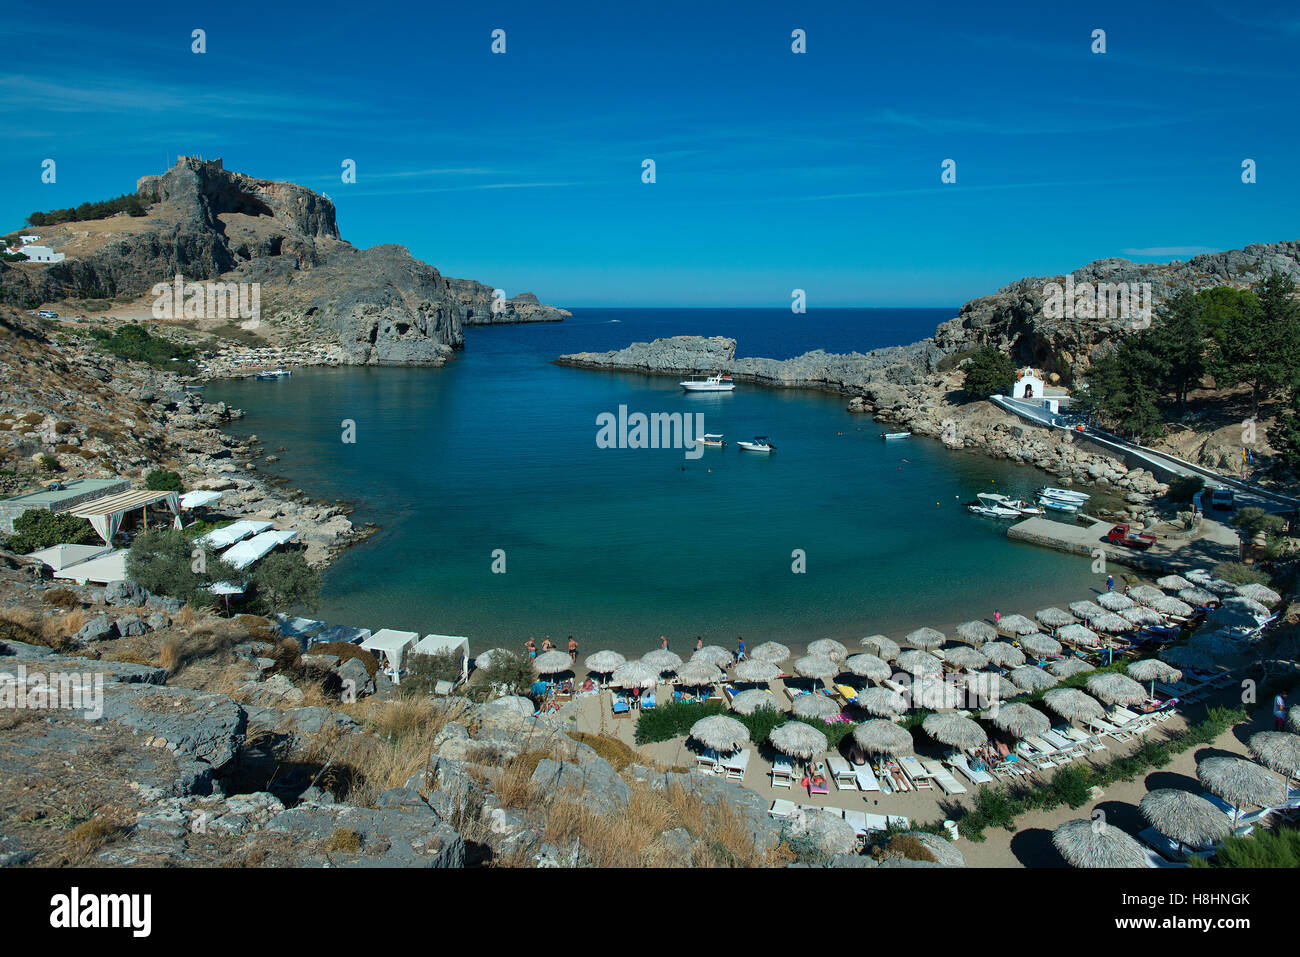 Plage de St Paul, Lindos, Rhodes, Grèce Photo Stock